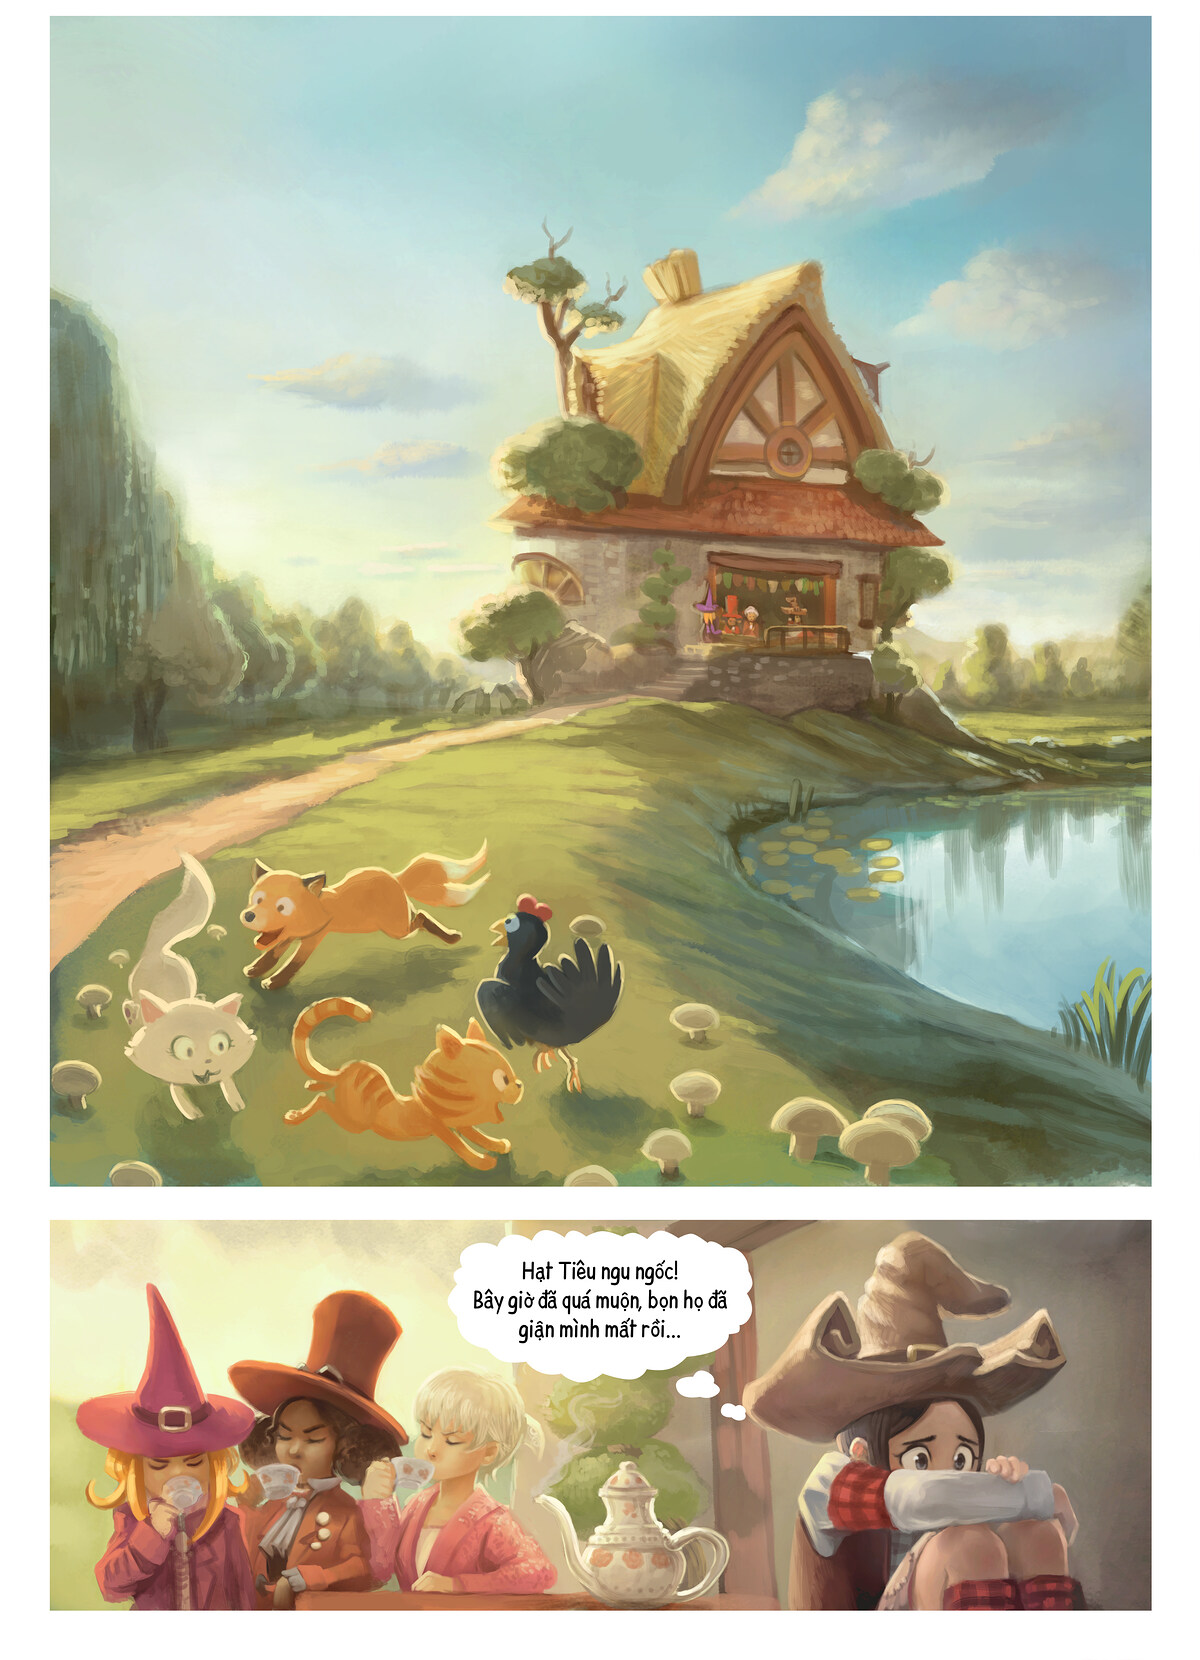 A webcomic page of Pepper&Carrot, Tập 9 [vi], trang 3